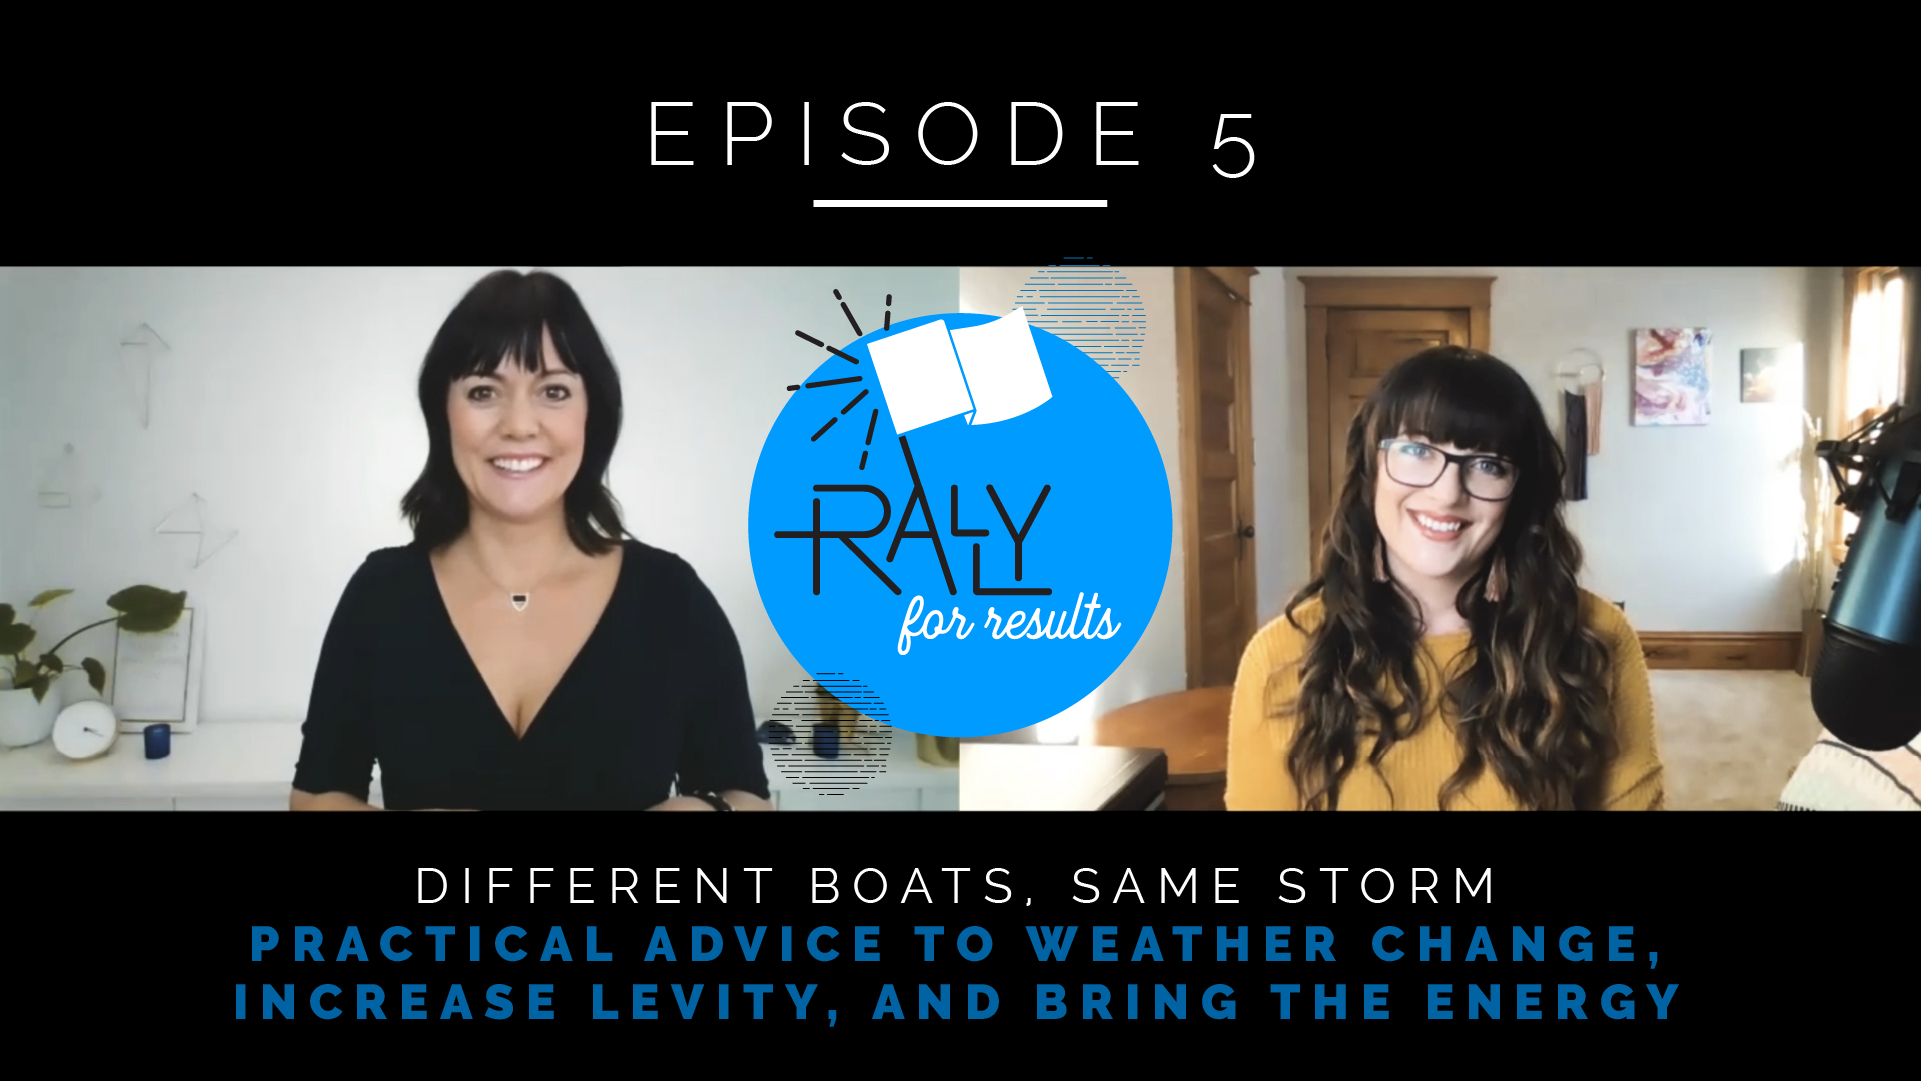 Different Boats, Same Storm: Practical Advice to Weather Change, Increase Levity, and Bring the Energy